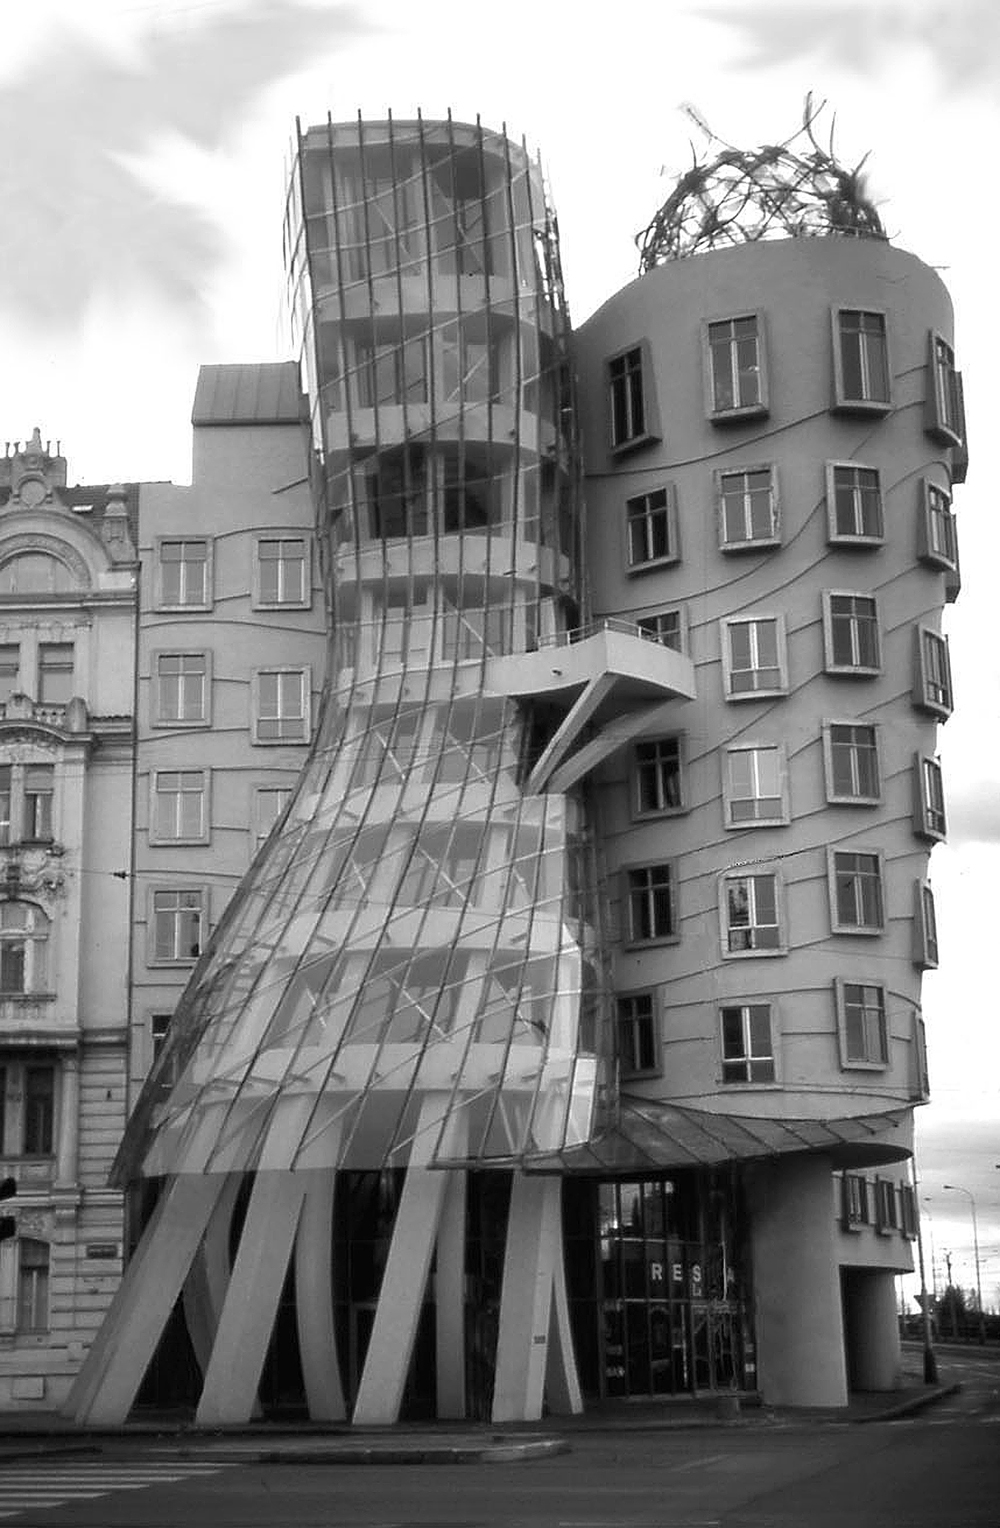 Nederland National Building - Praga (Cz)